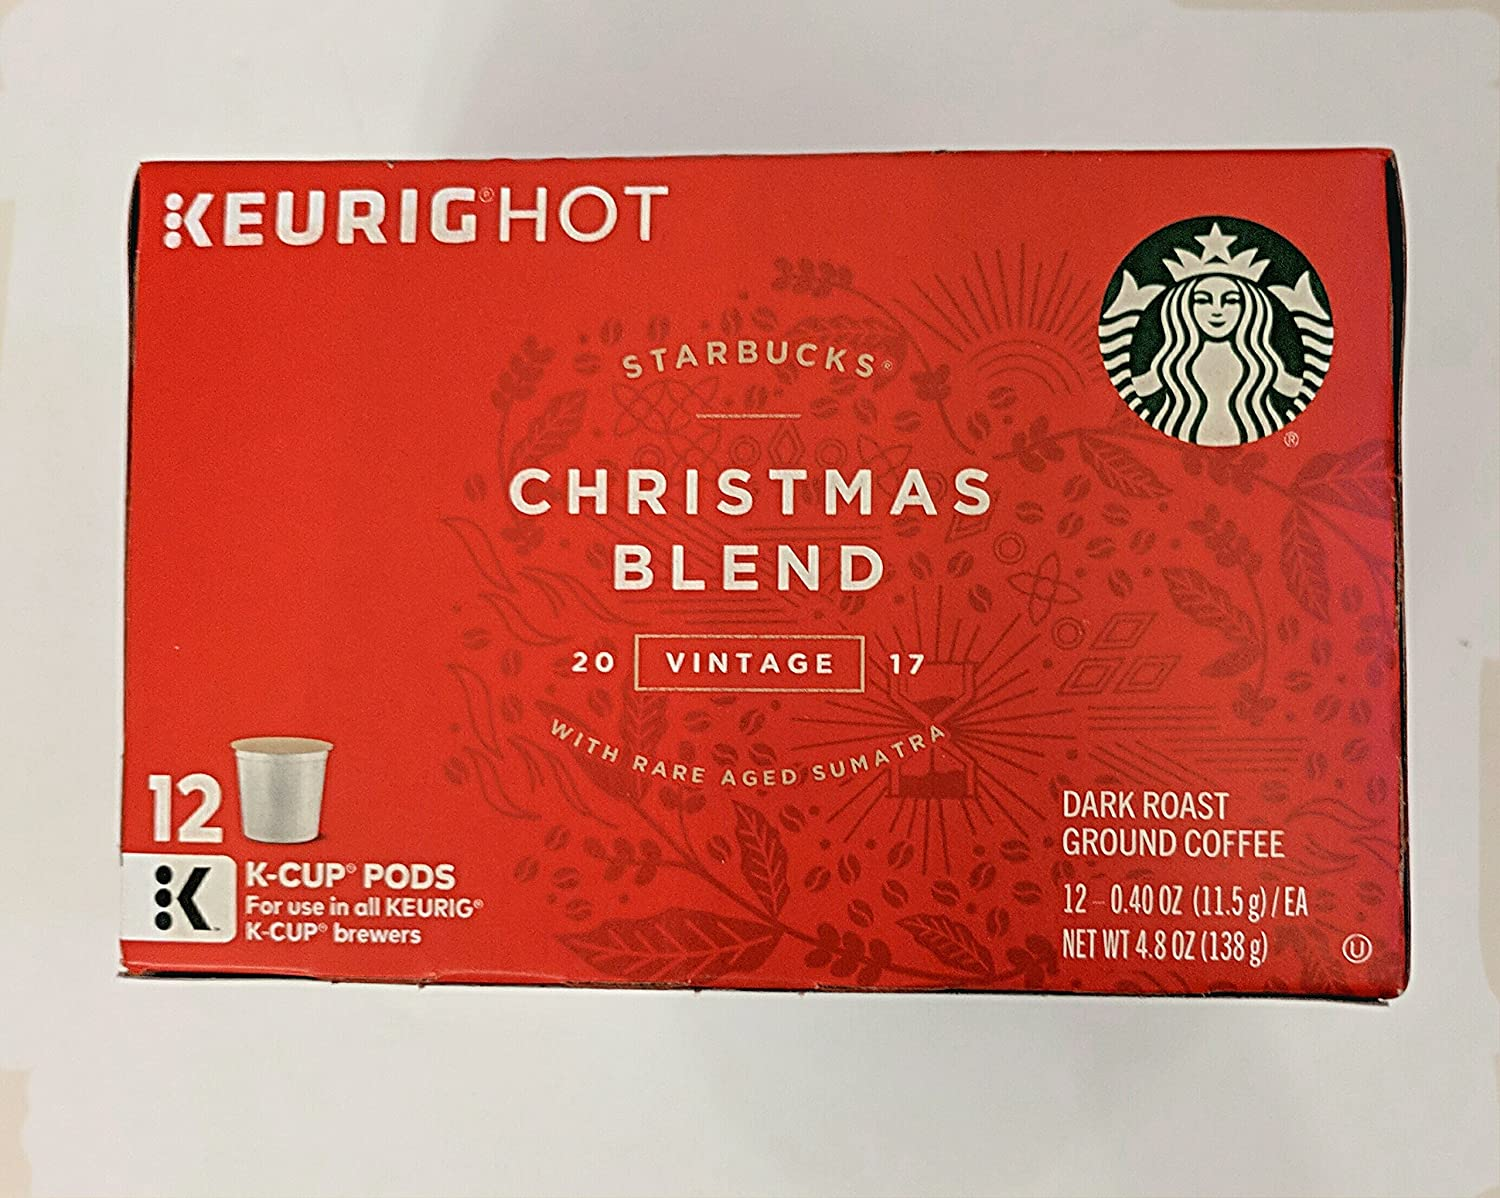 Starbucks Christmas Blend 2020 K Cups Starbucks Christmas Blend K Cups Pods Vintage 2017   12 Count